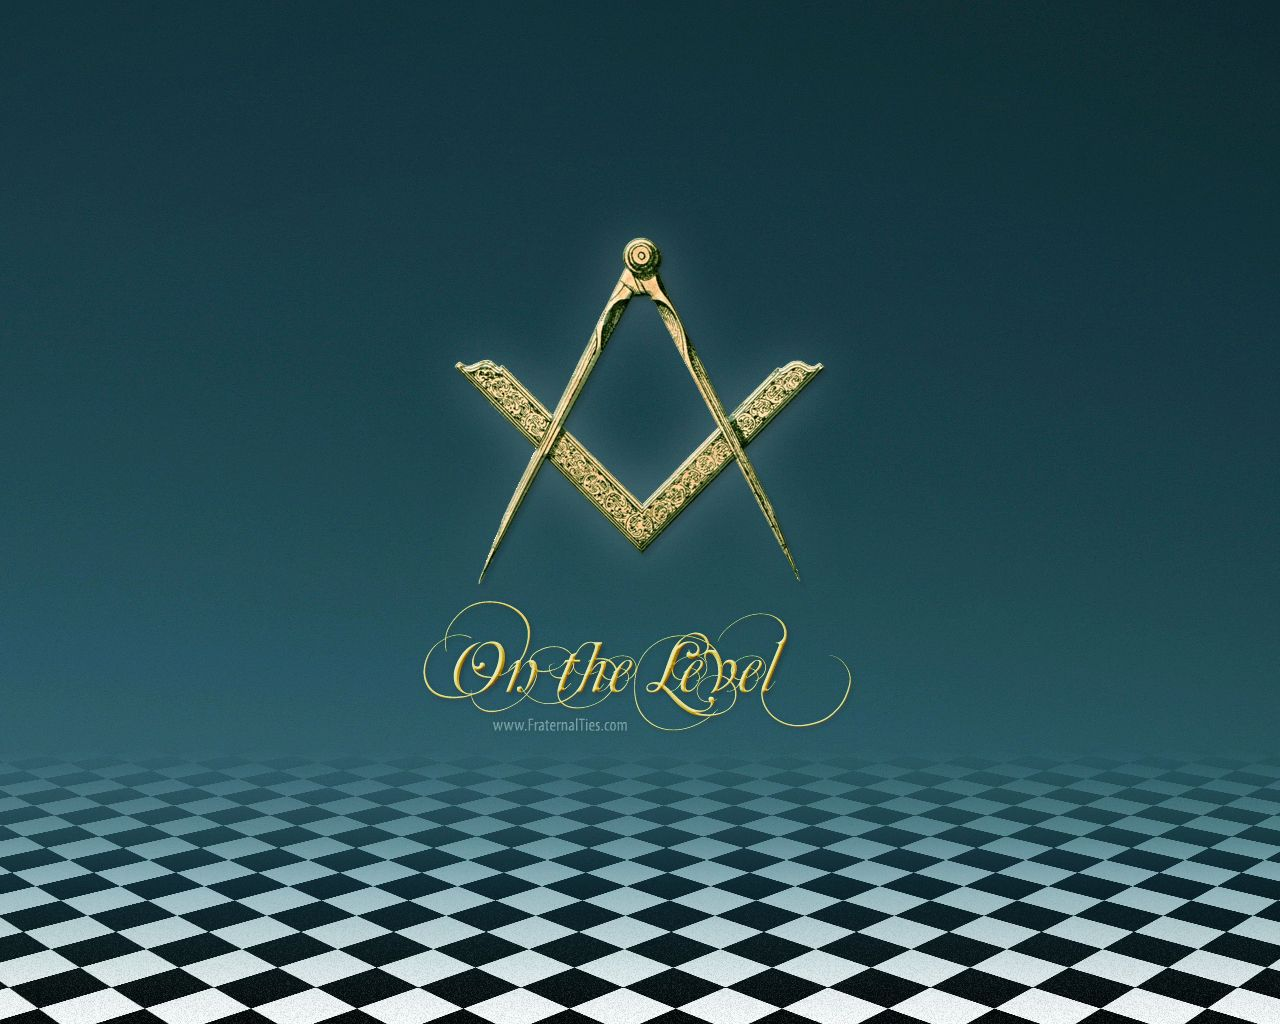 Masonic Fraternalties Neckties On The Level Freemason Wallpaper With HD